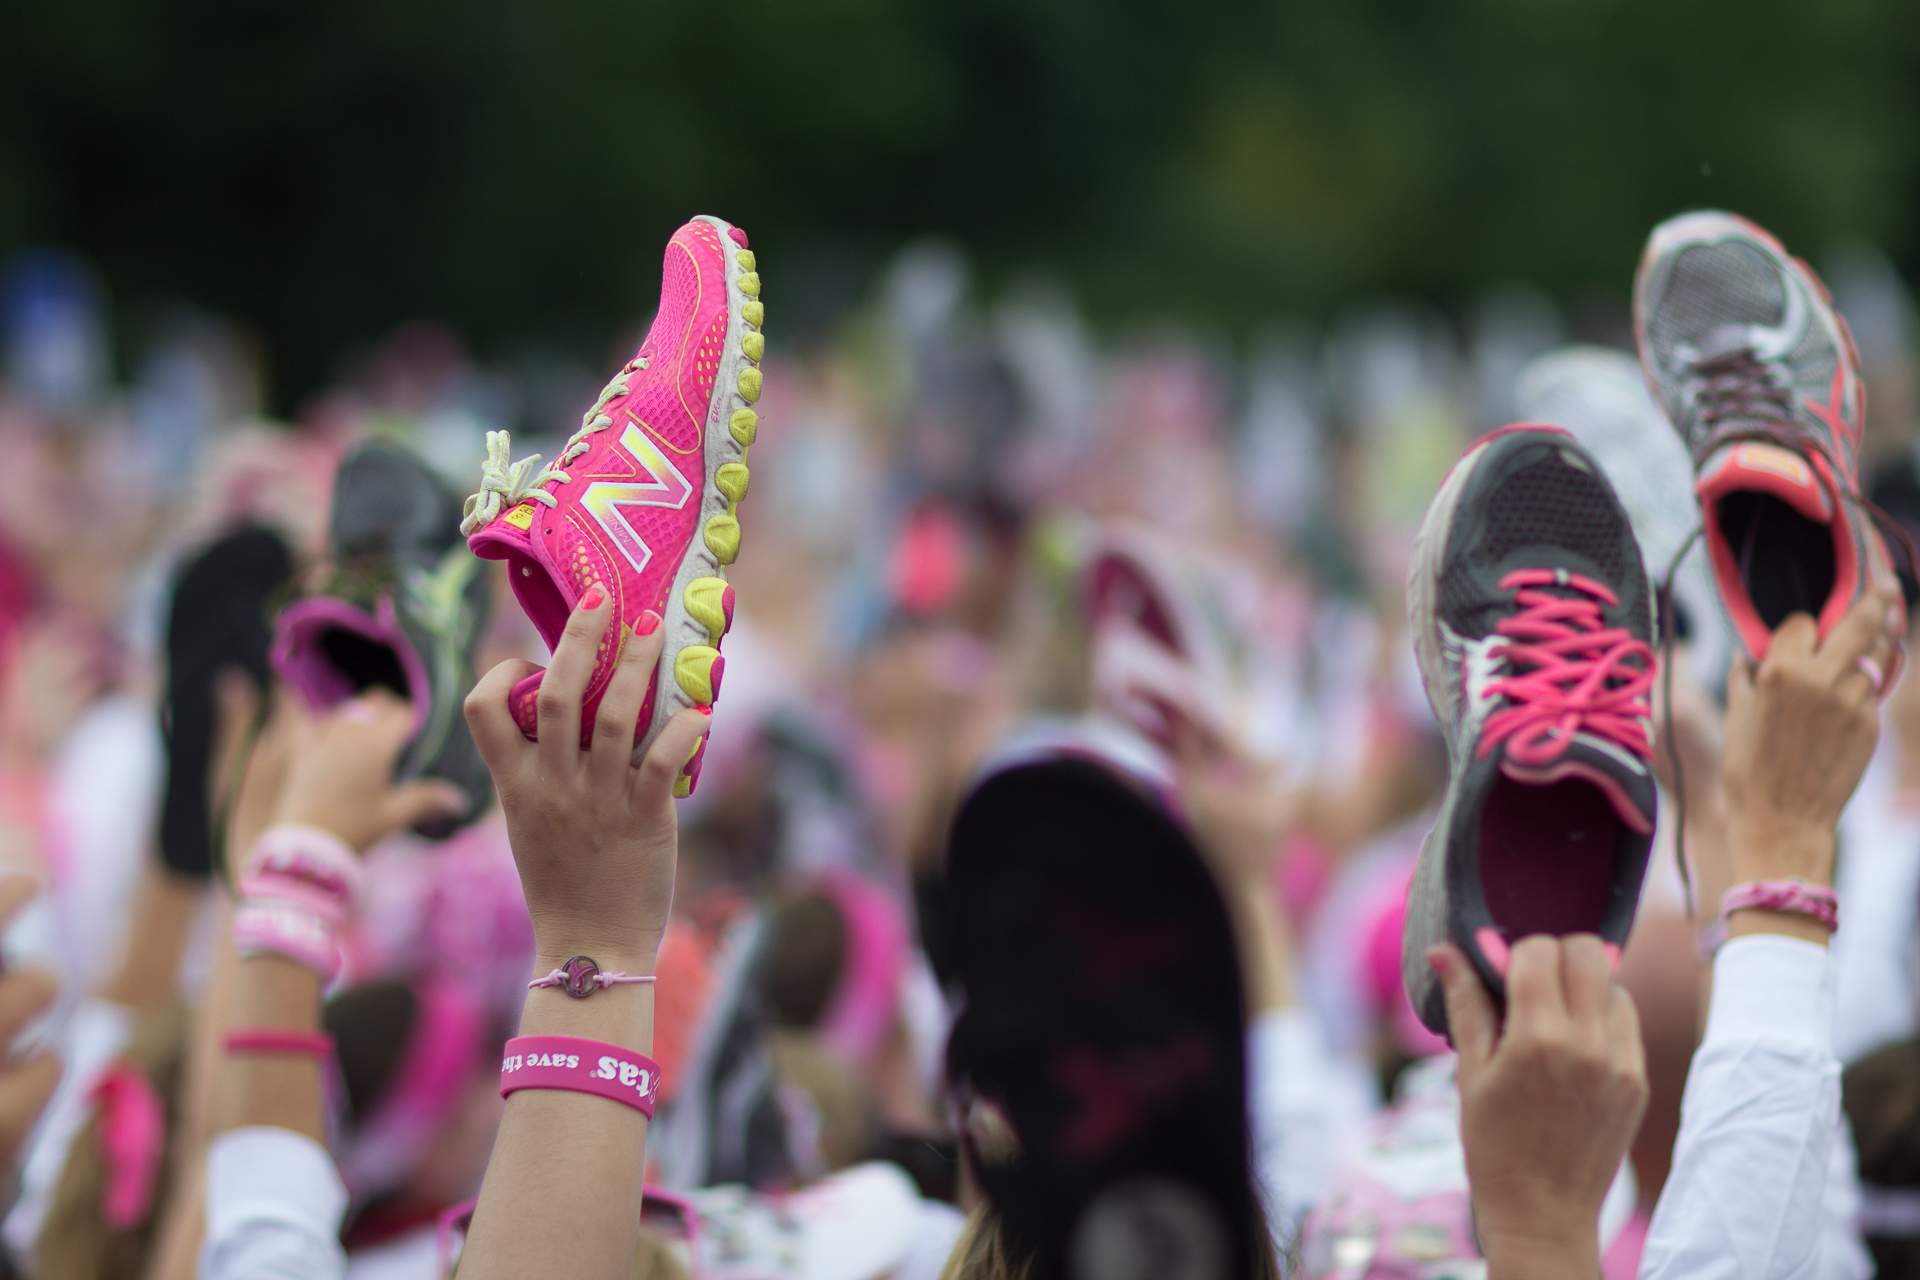 Three day breast walk